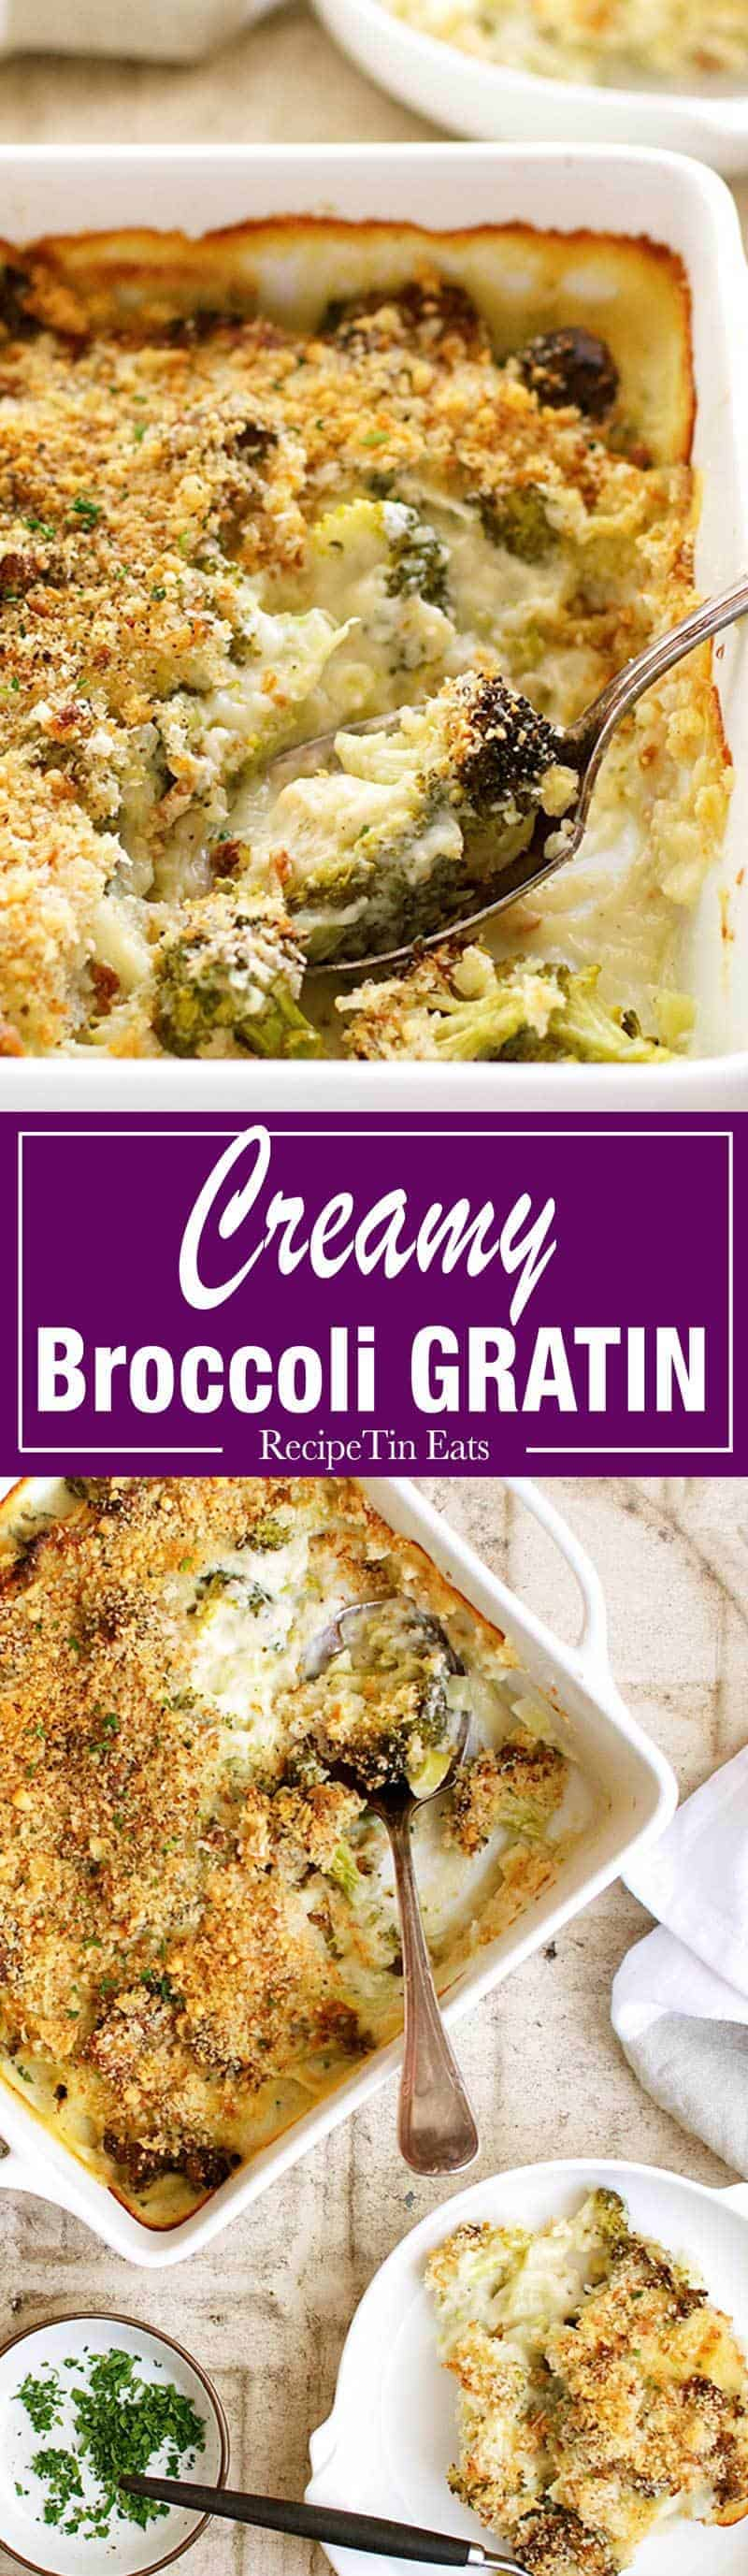 I'm always on the look out for delish ways with broccoli and this is a KEEPER!!!